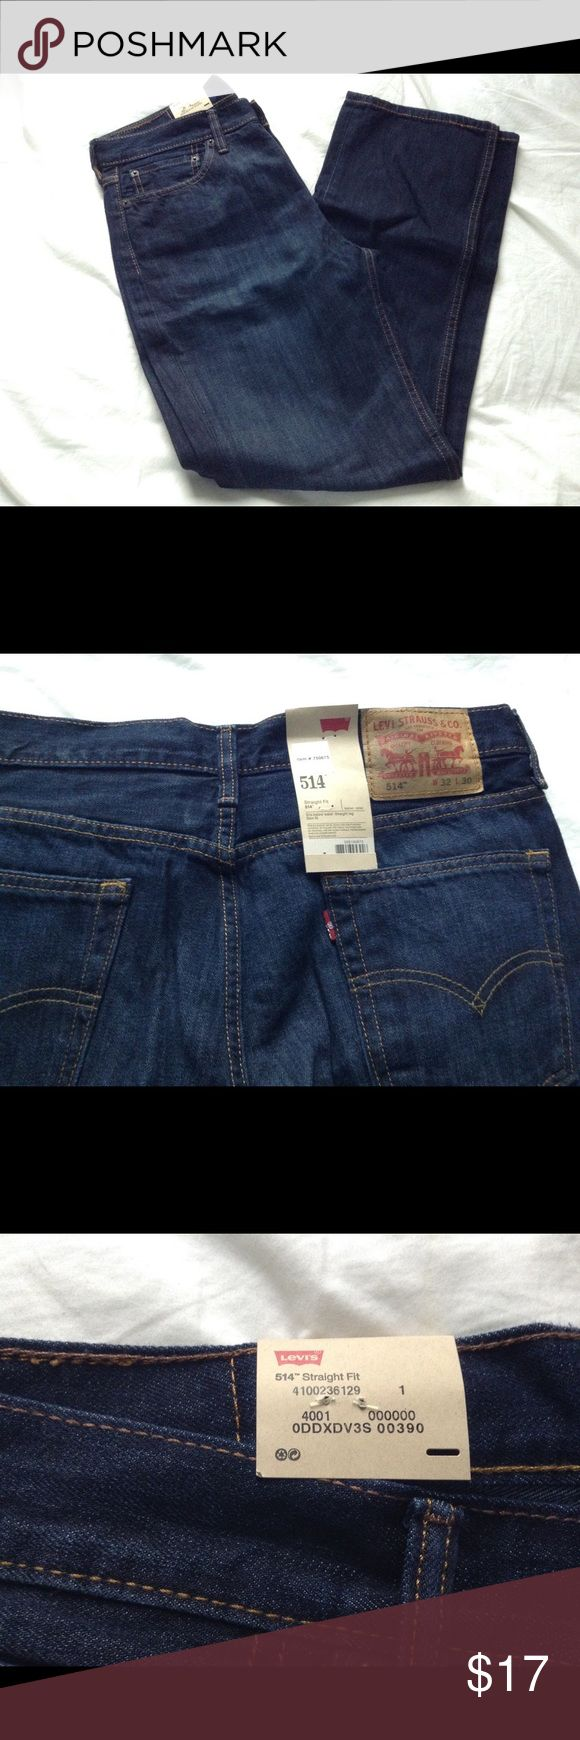 Men's Levi Jeans NWT levi jeans in perfect condition. Levi's Jeans Straight